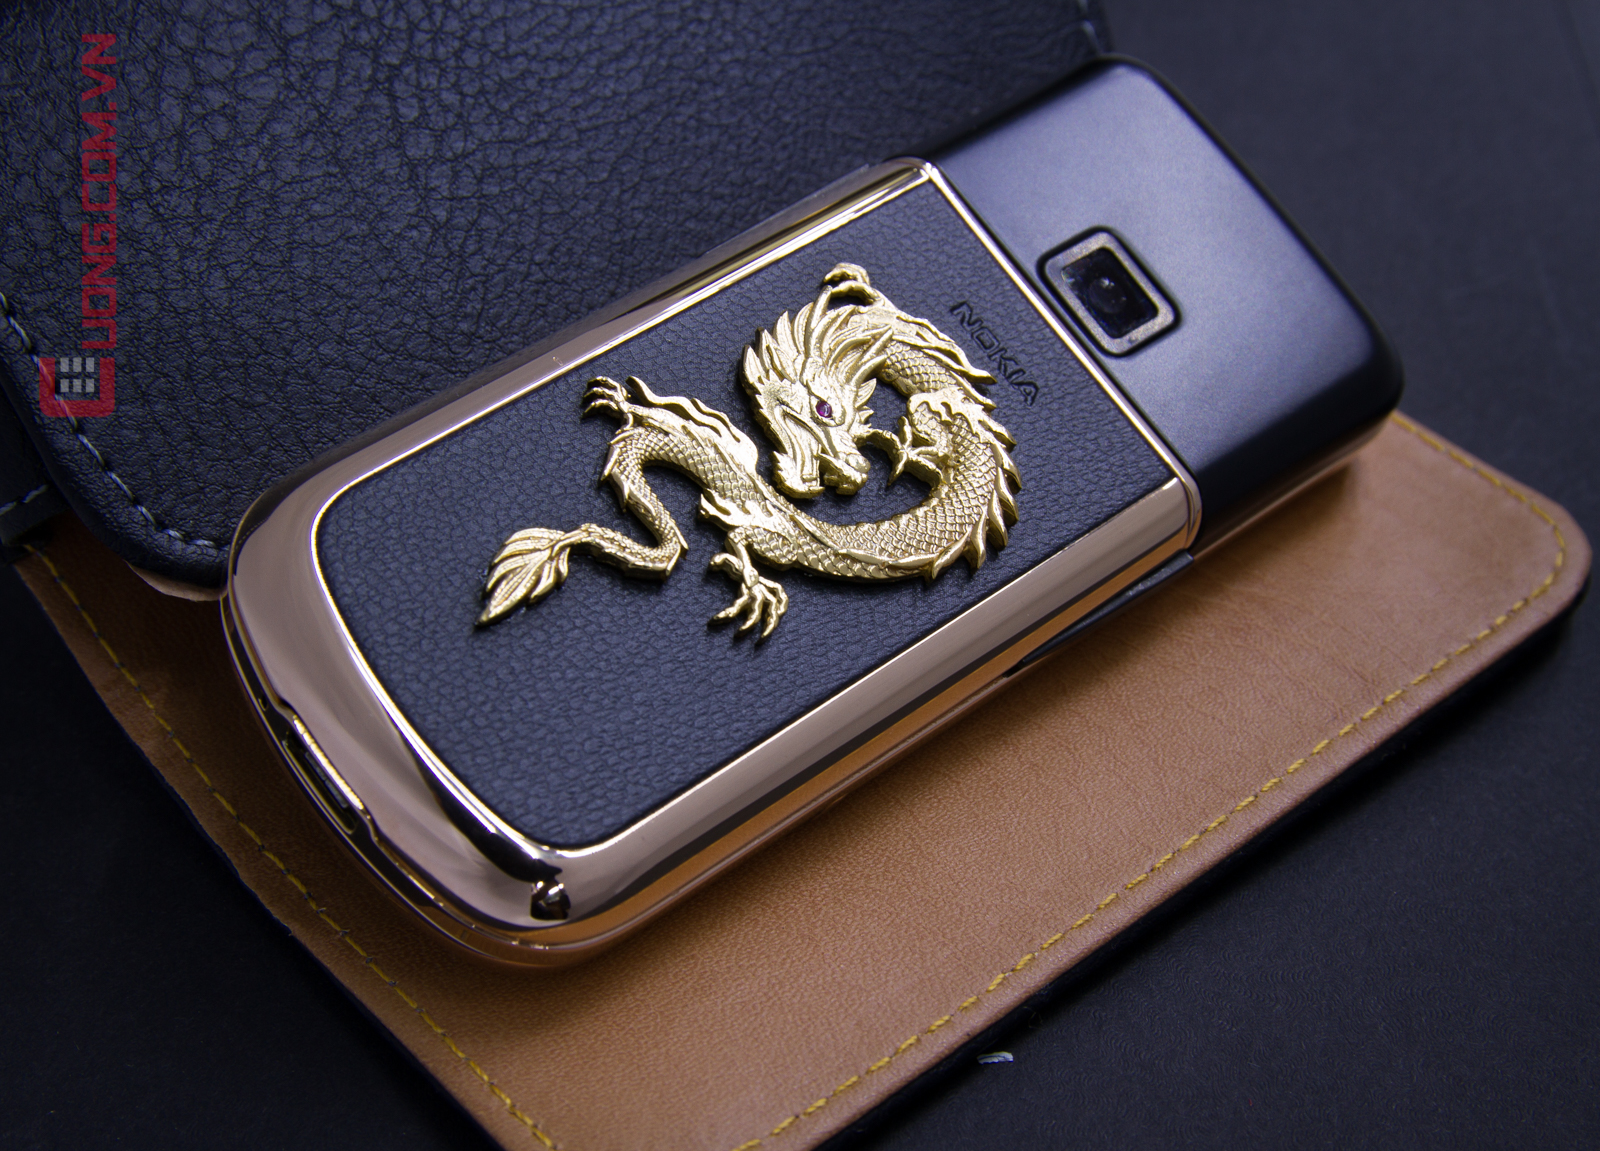 Nokia 8800 Rose Gold Arte Dragon